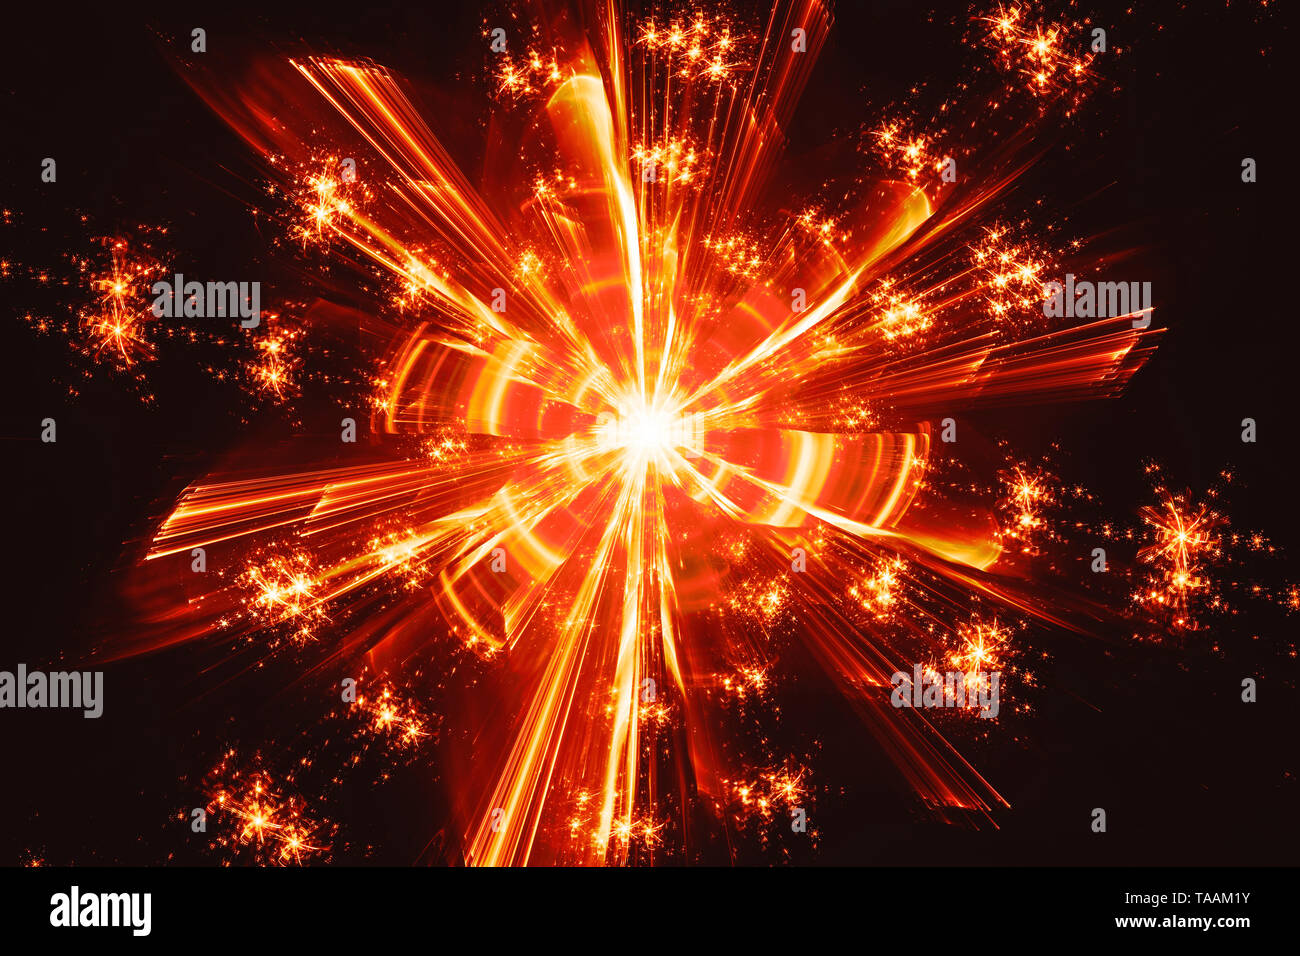 Fiery glowing quantum fractal, computer generated abstract background, 3D rendering - Stock Image